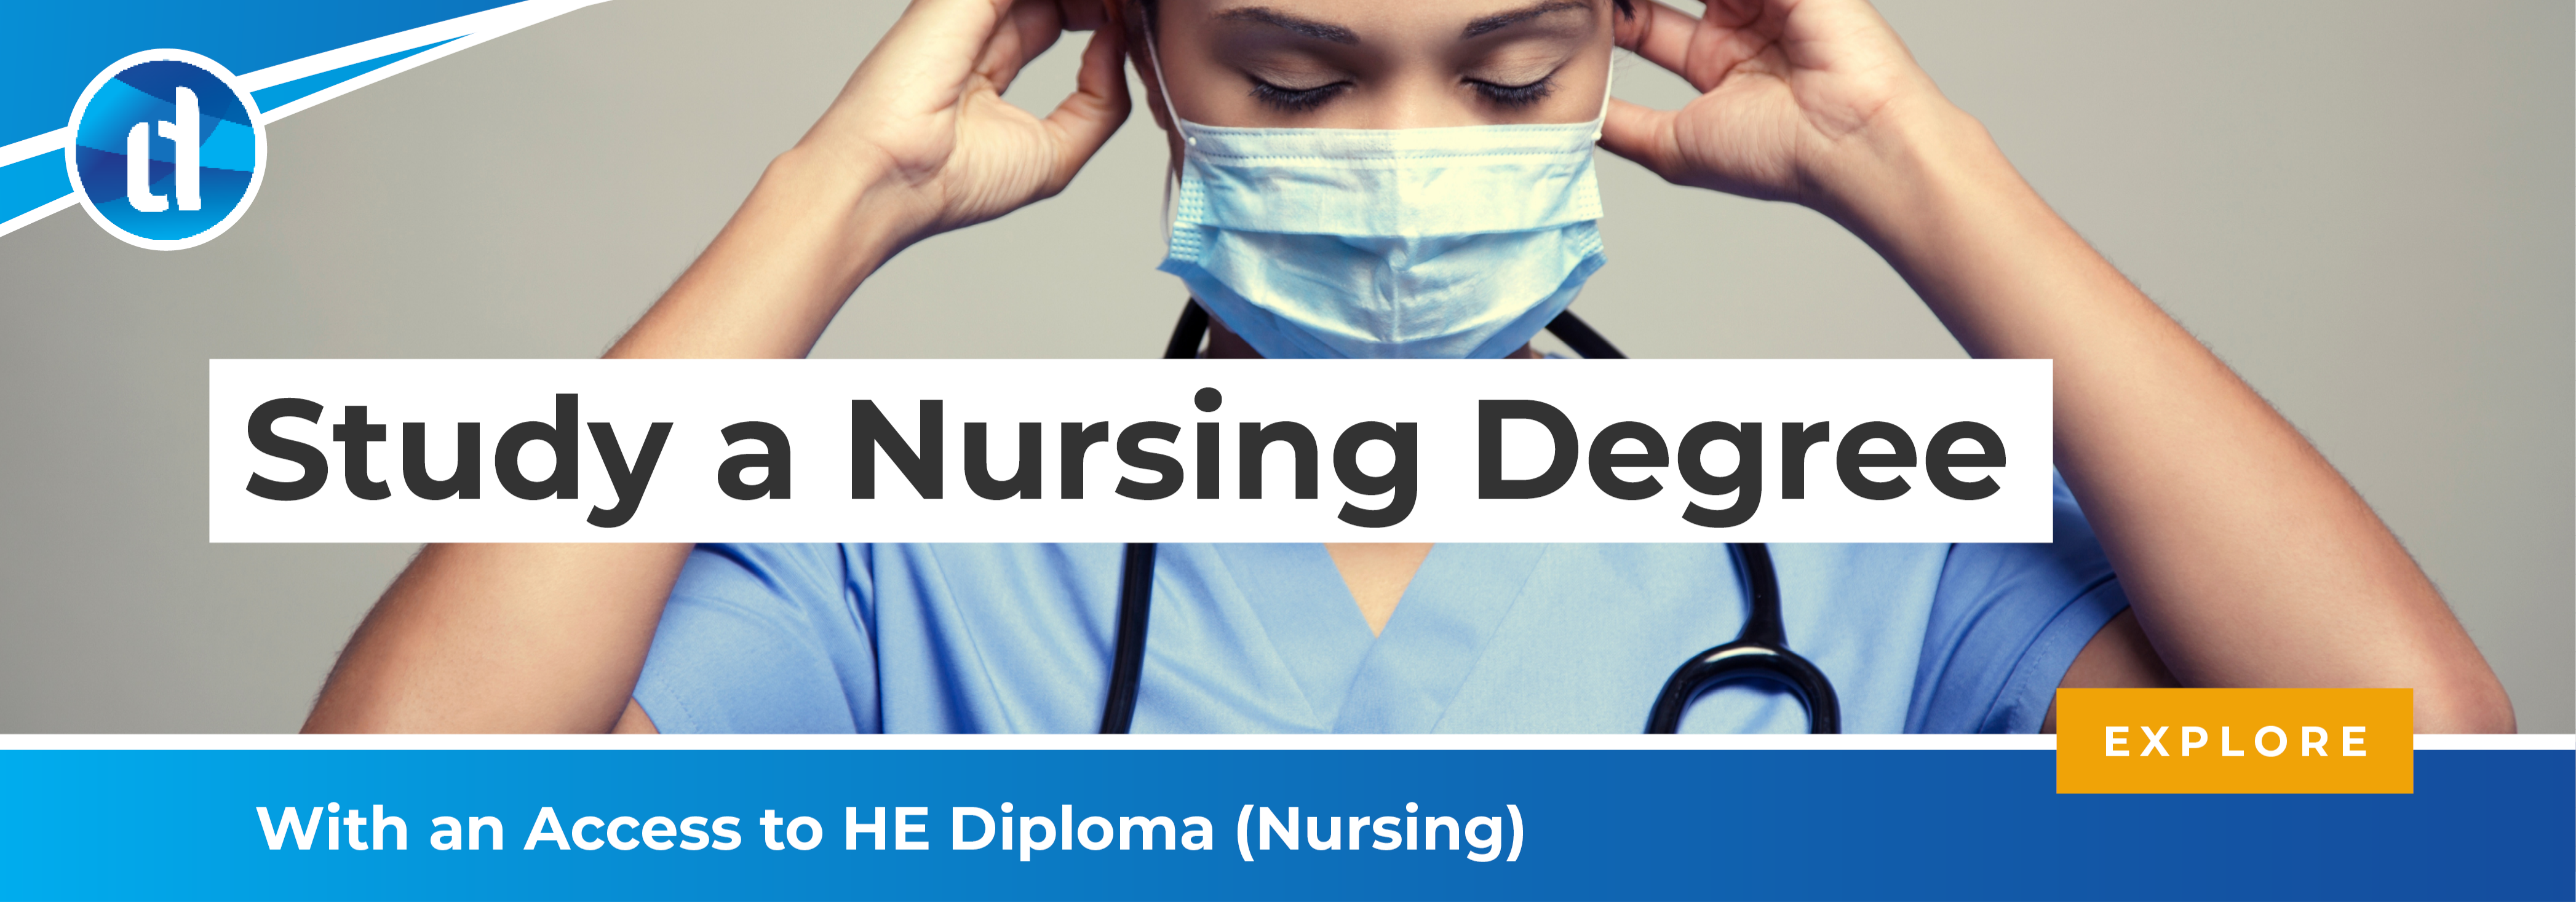 learndirect - Acute and Critical Care Nursing